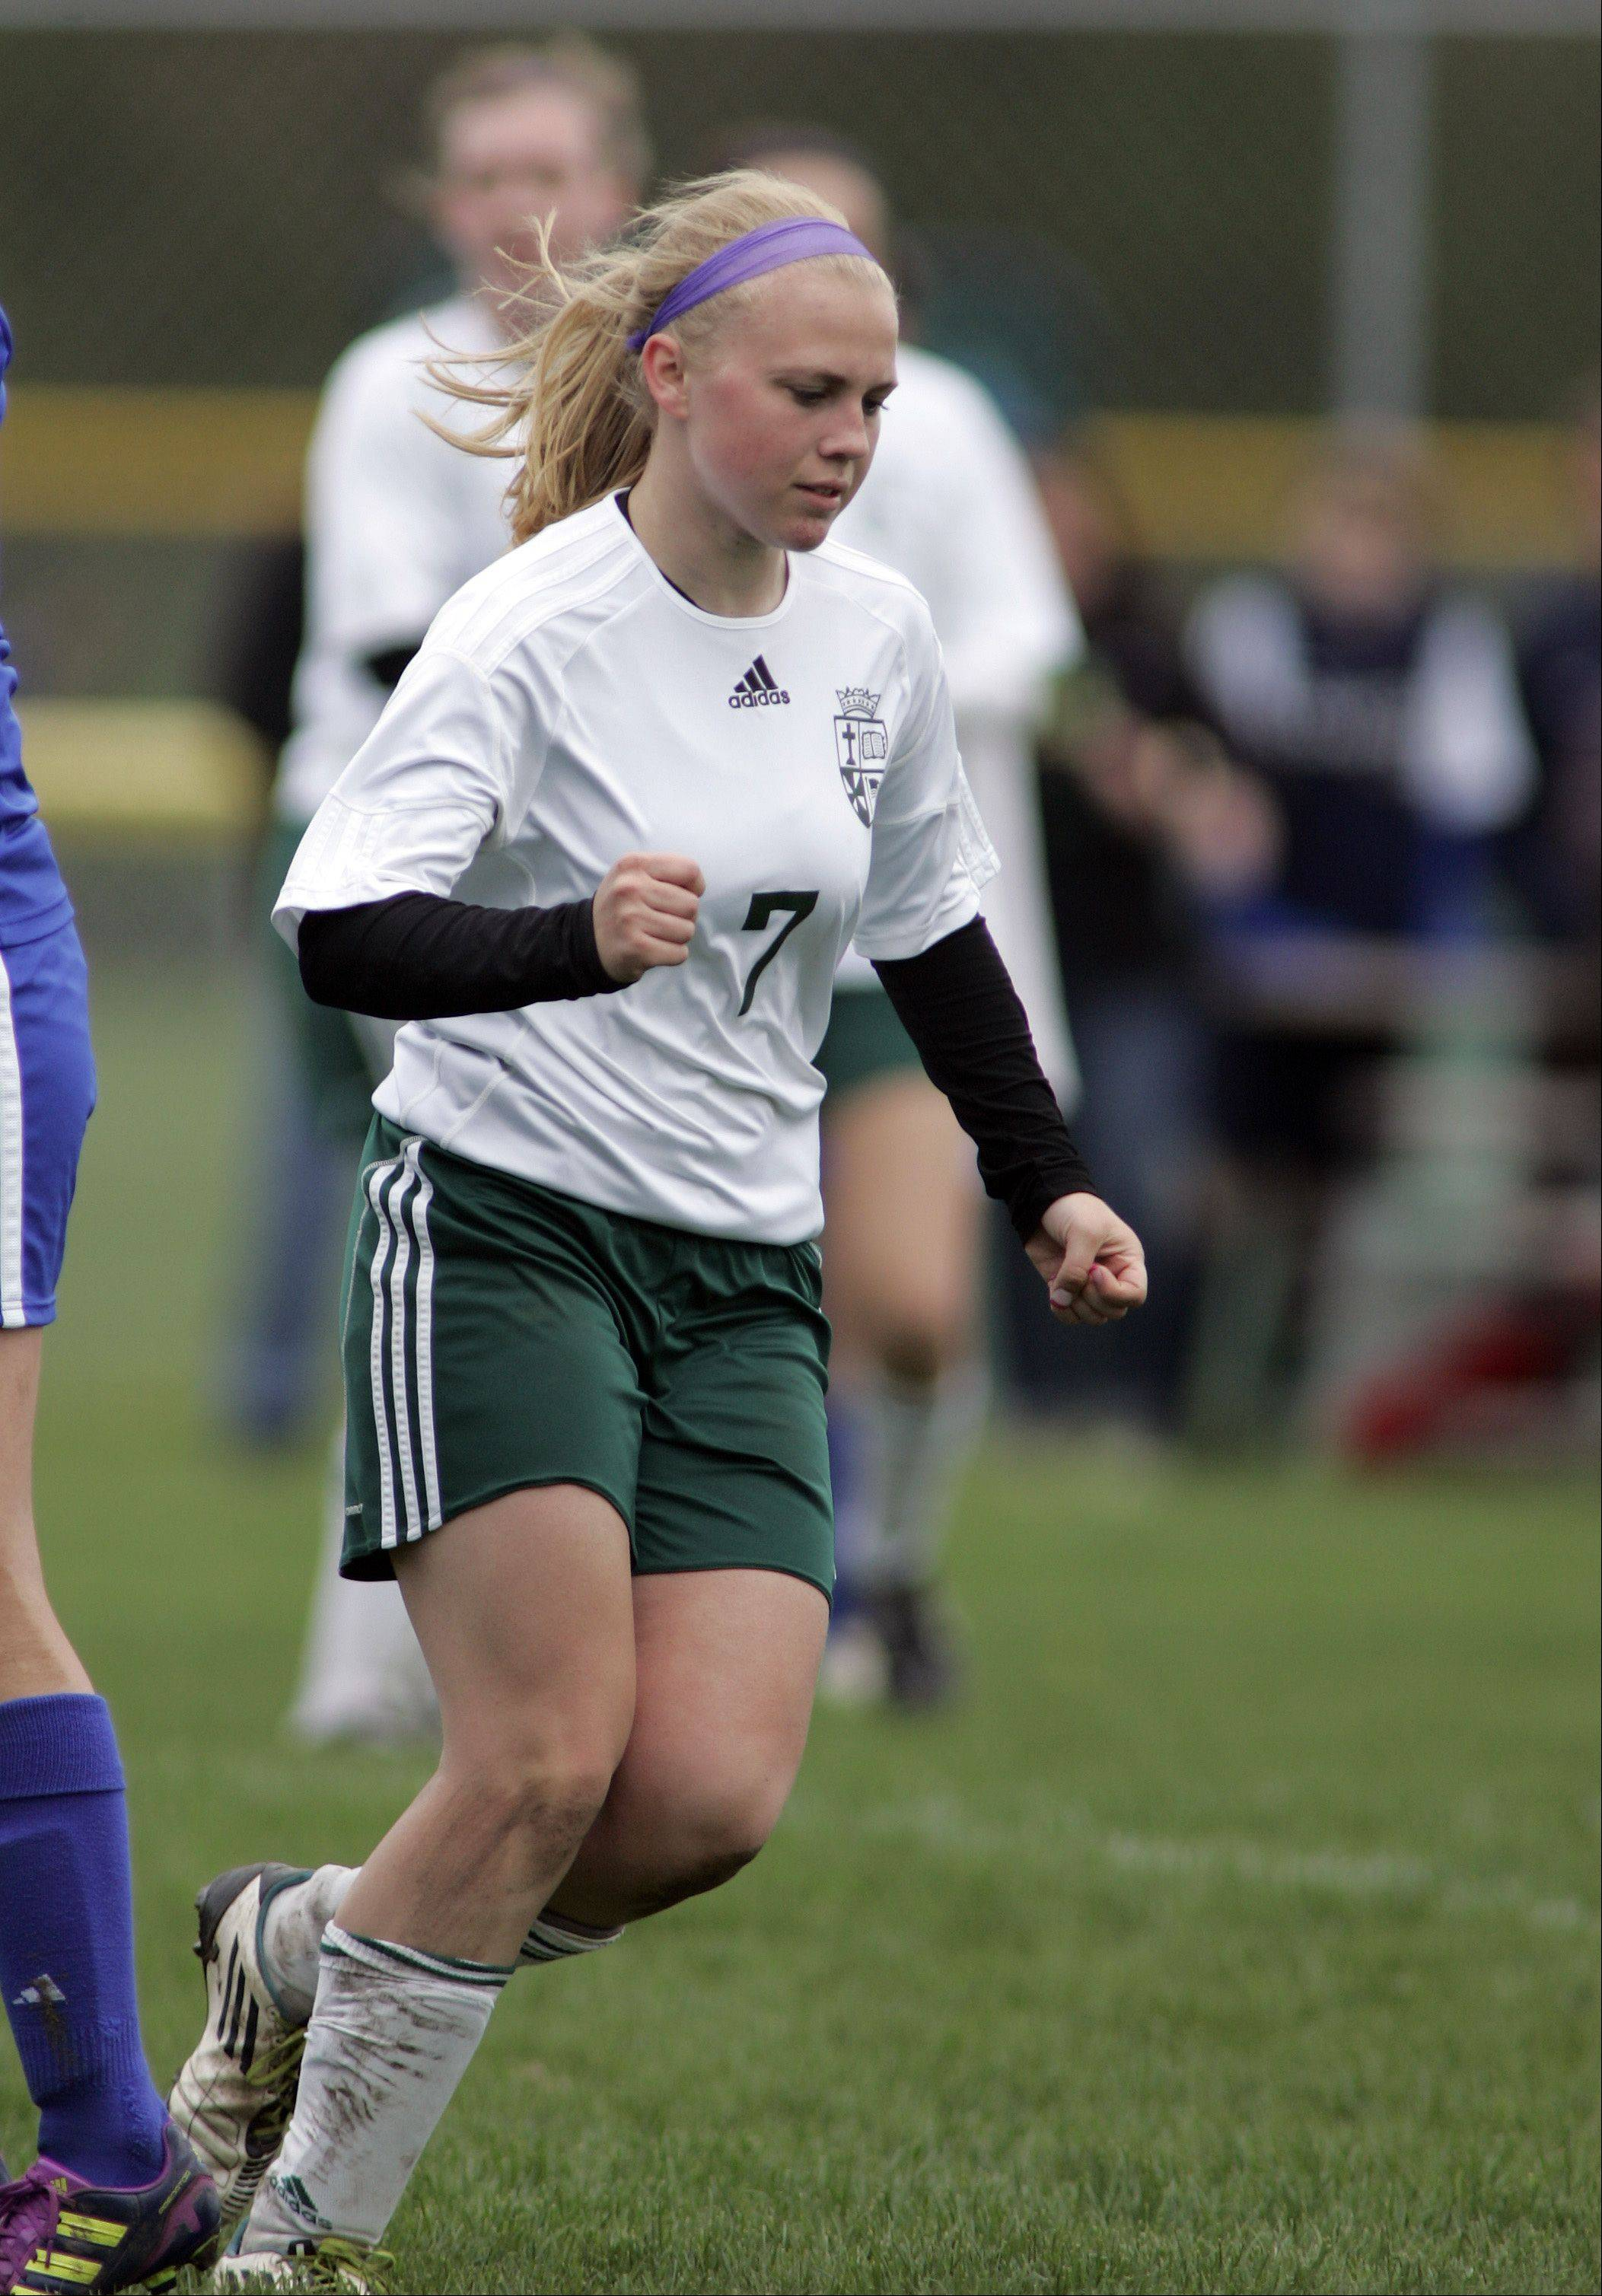 St. Edward's Kim Smith reacts after scoring a goal Saturday.